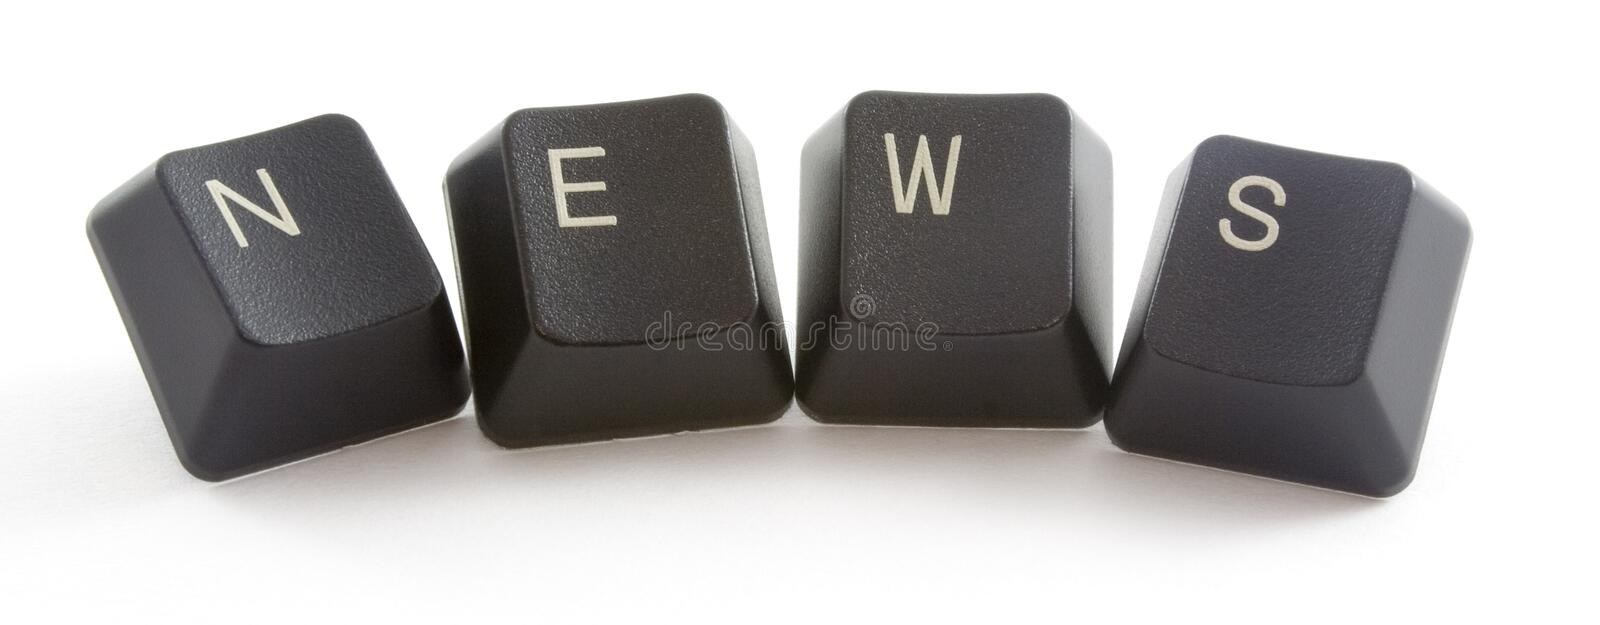 News. Formed by keys of a computer keyboard